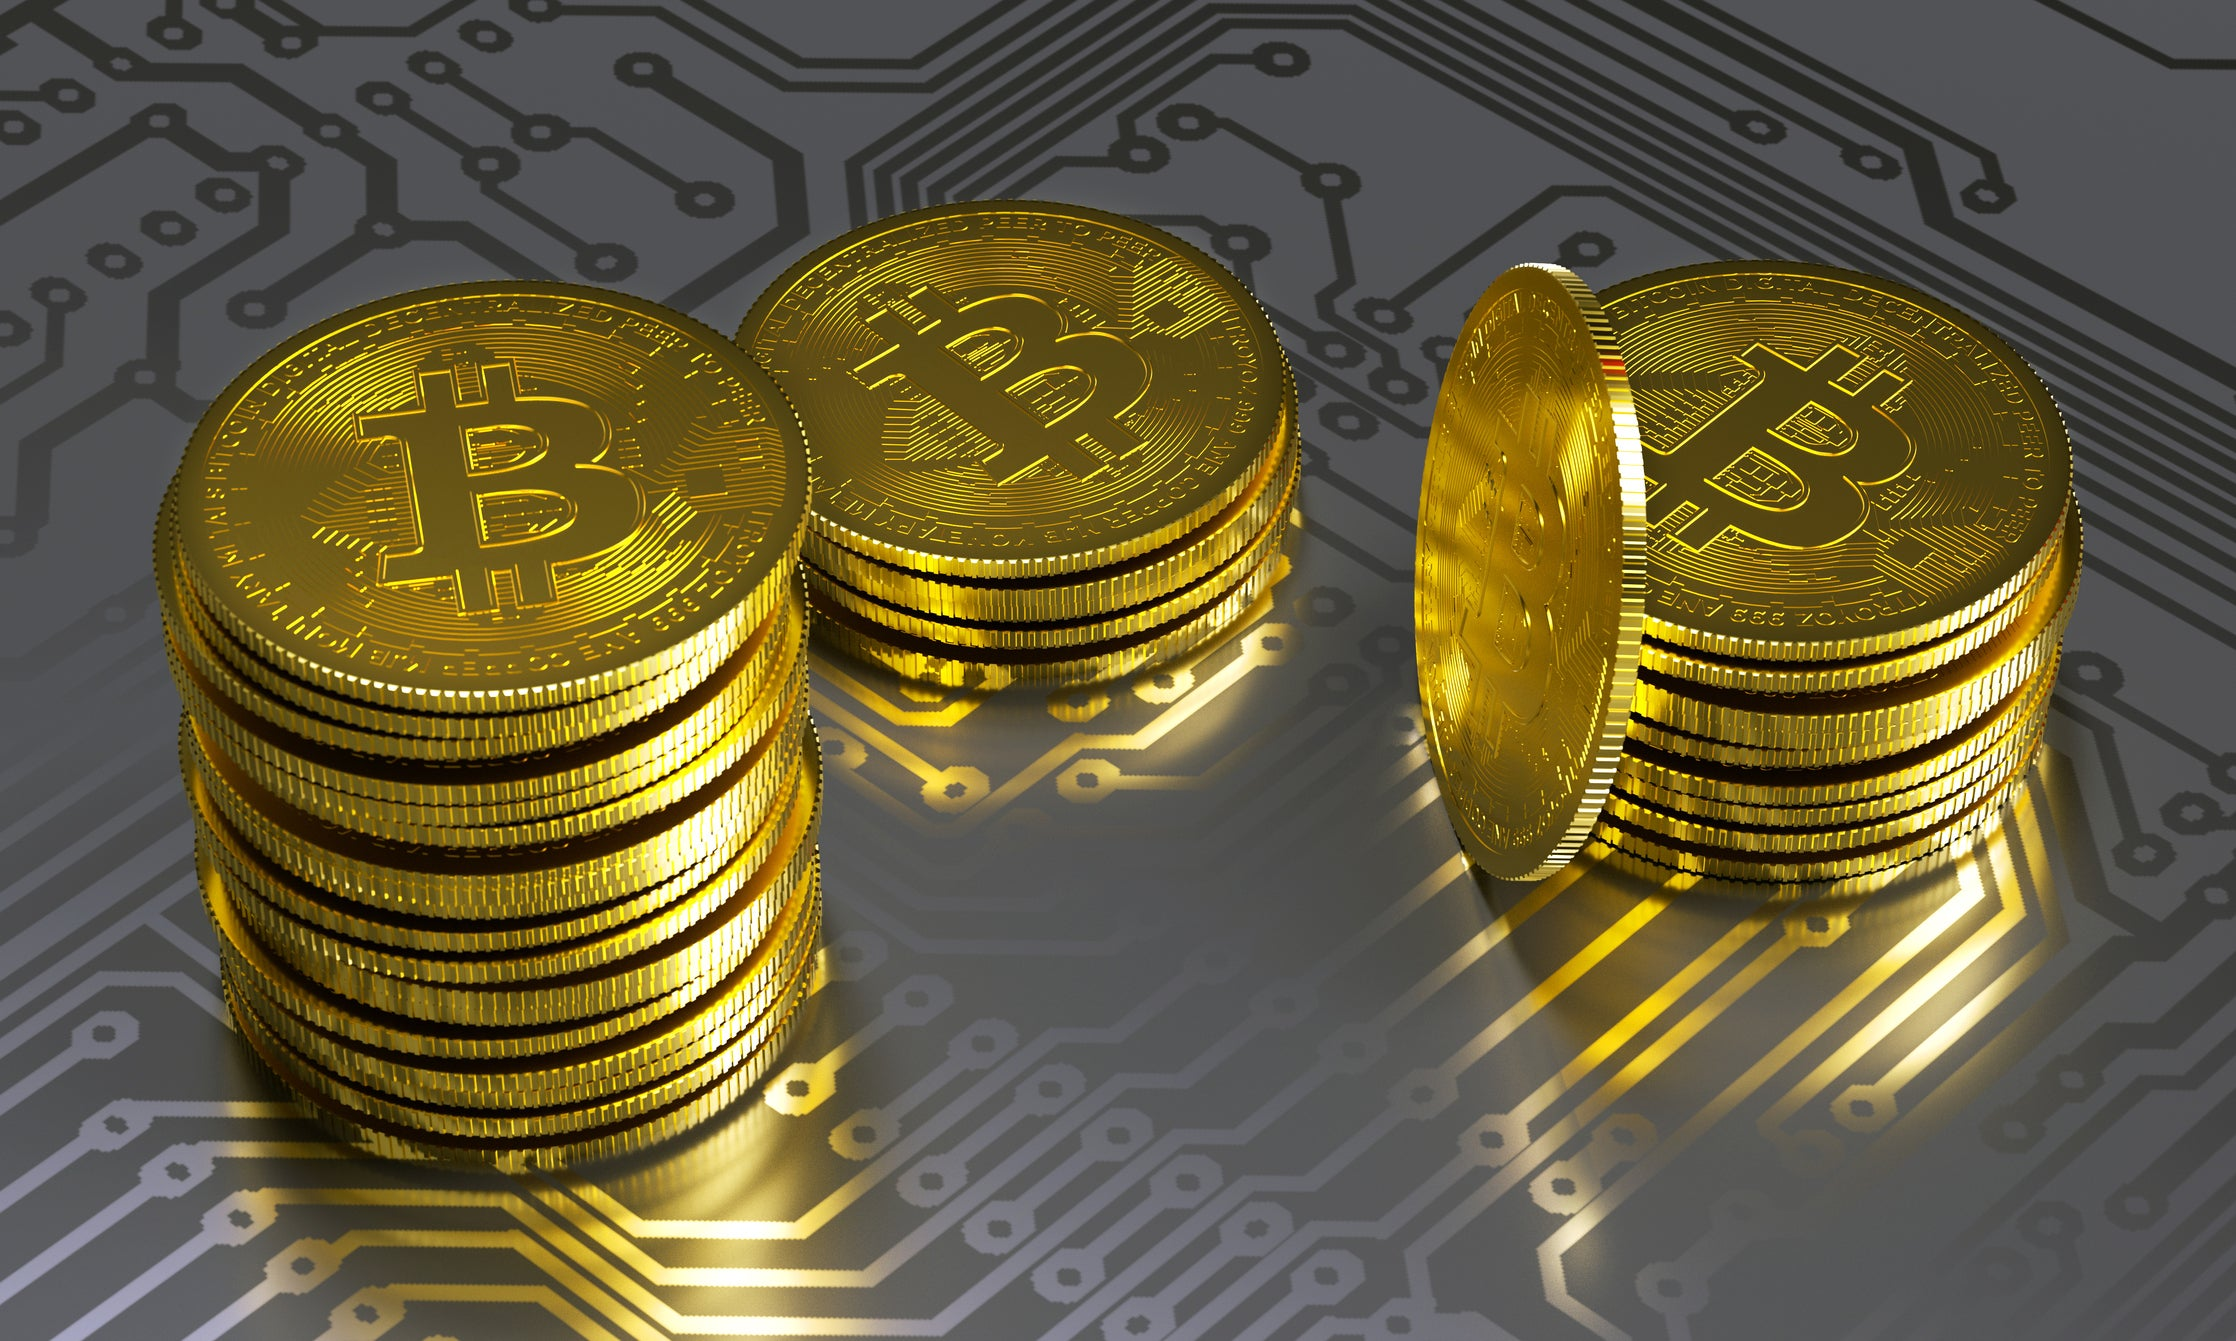 bitcoins images